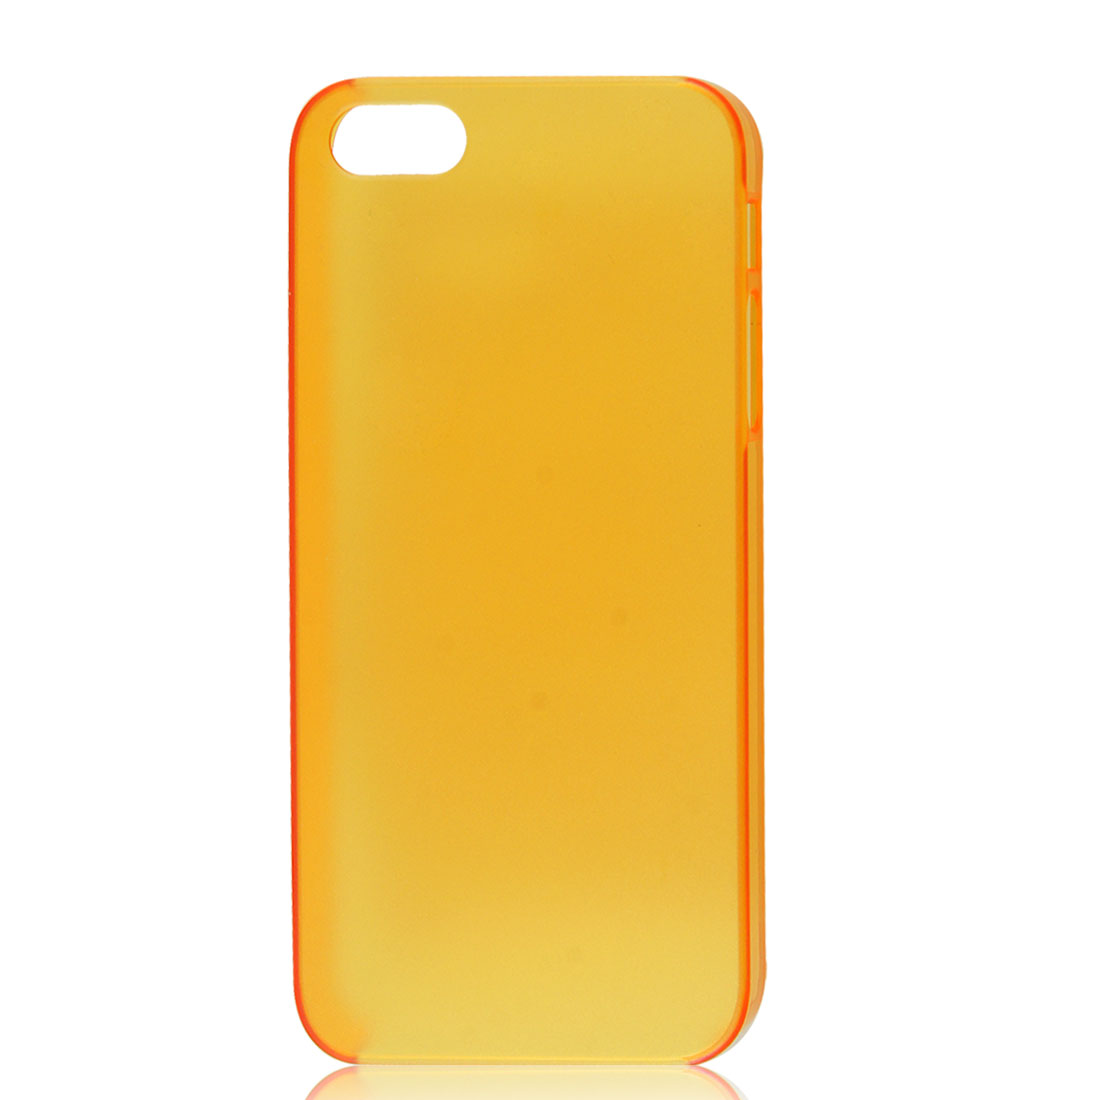 Slim Clear Orange Back Case Protective Cover for iPhone 5 5G